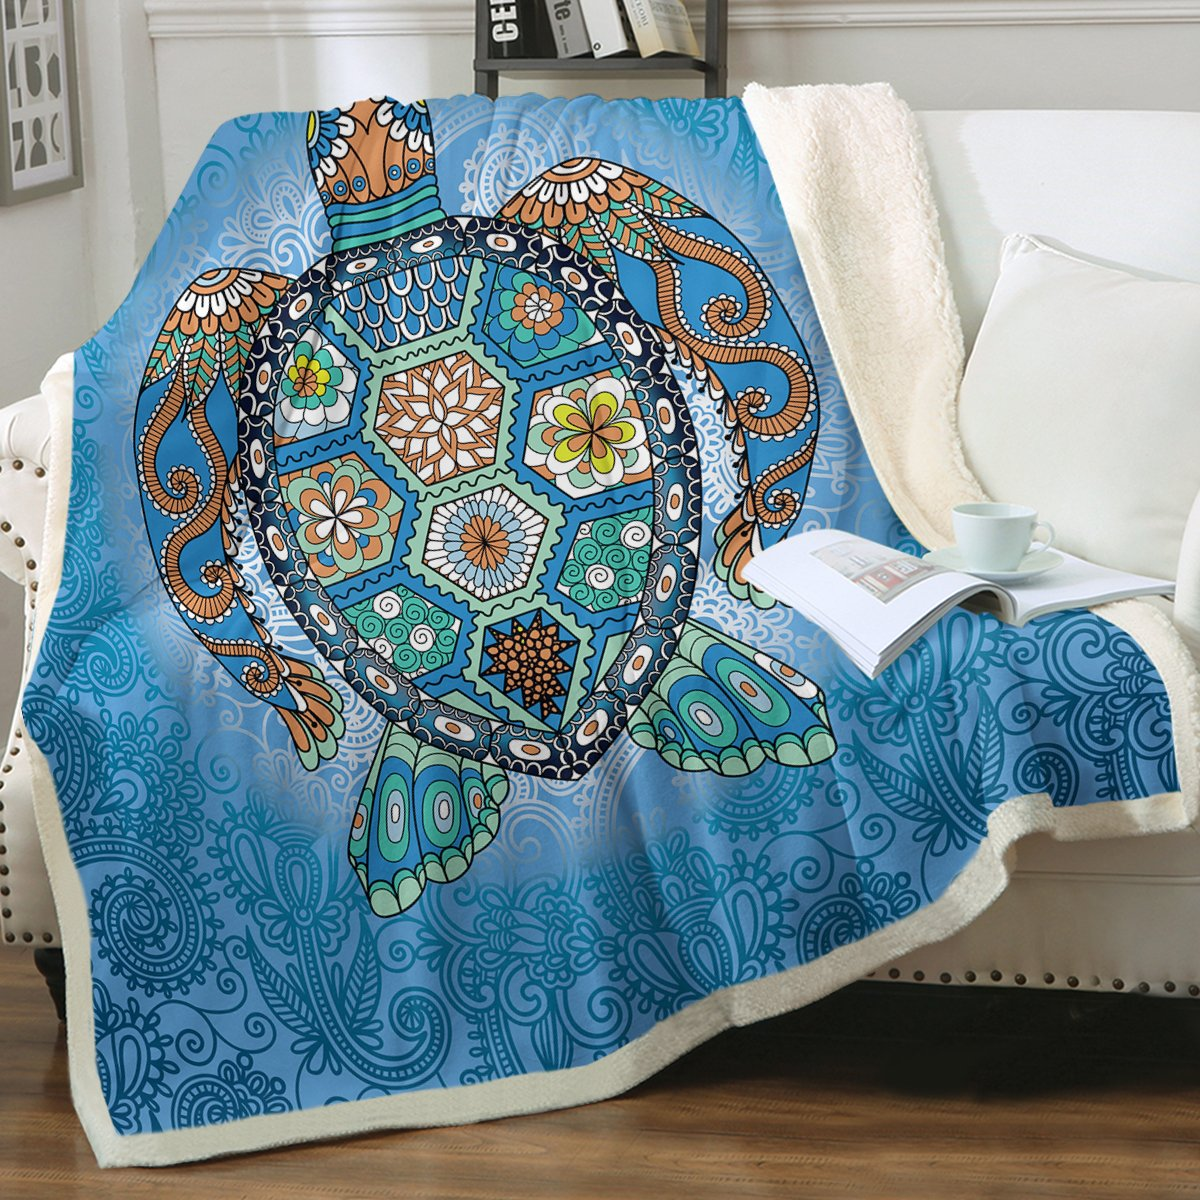 The Turtle Totem Soft Sherpa Blanket